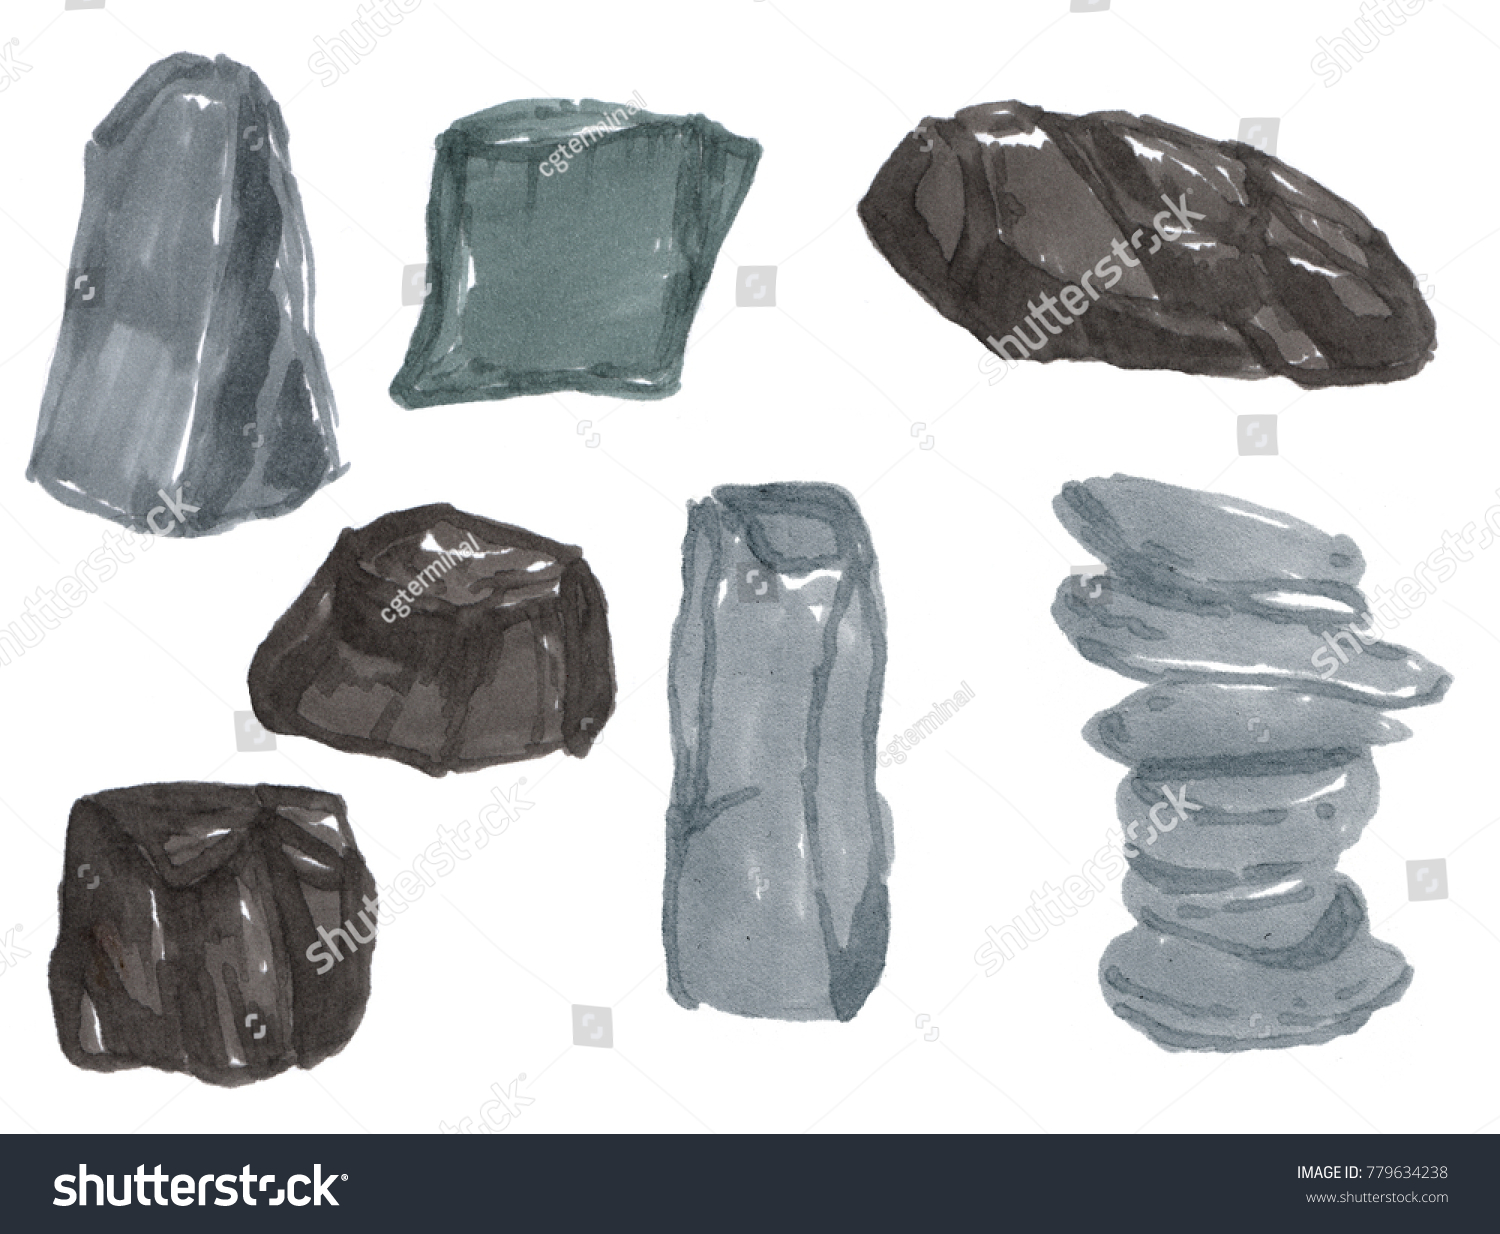 Royalty Free Stock Illustration of Set Different Stones